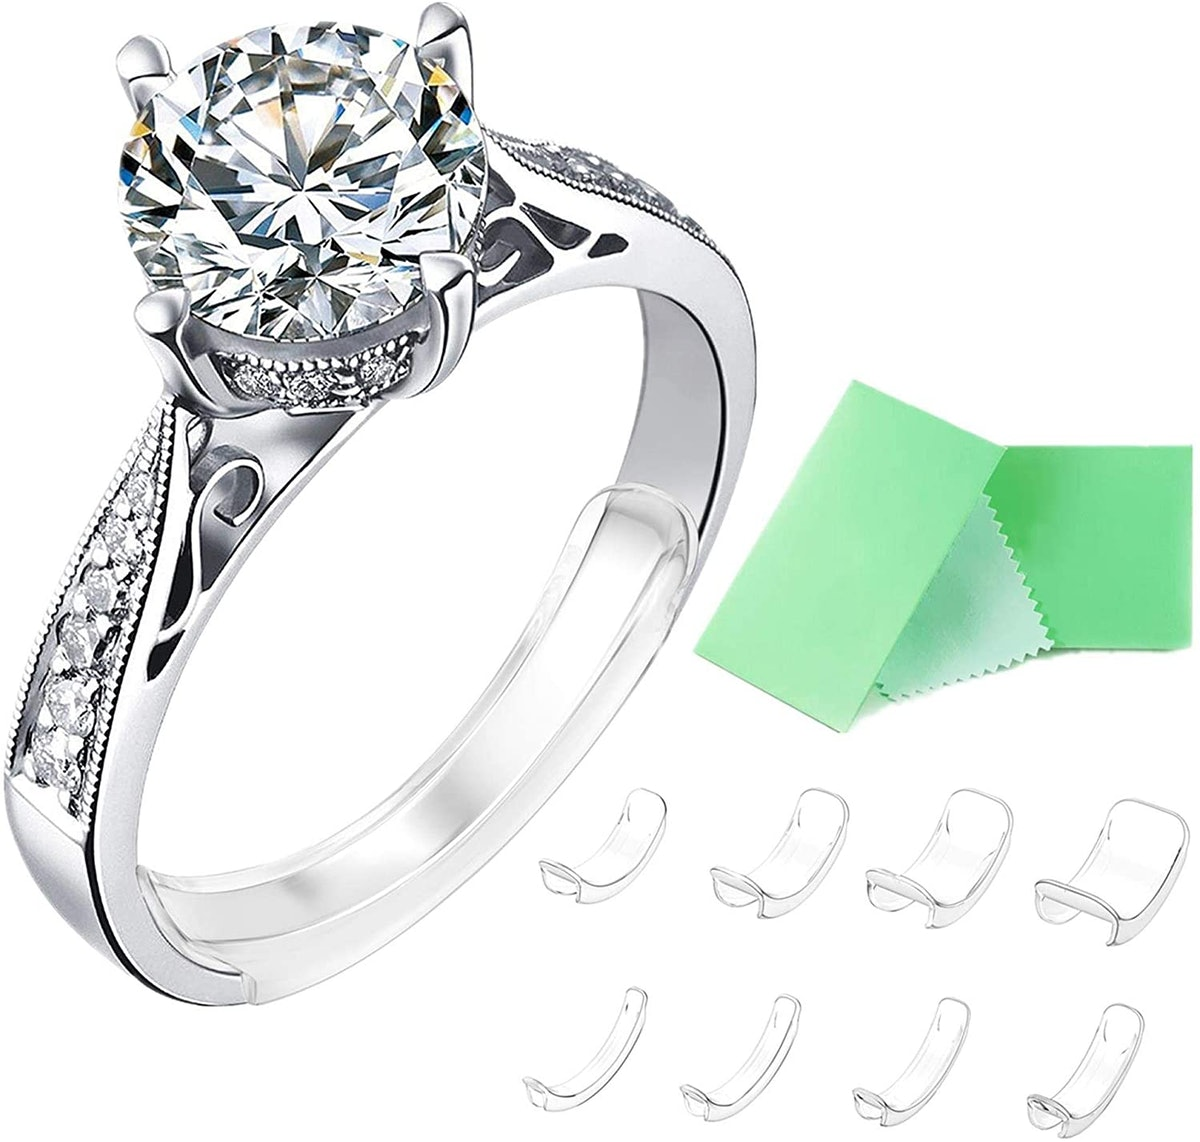 Invisible Ring Size Adjuster